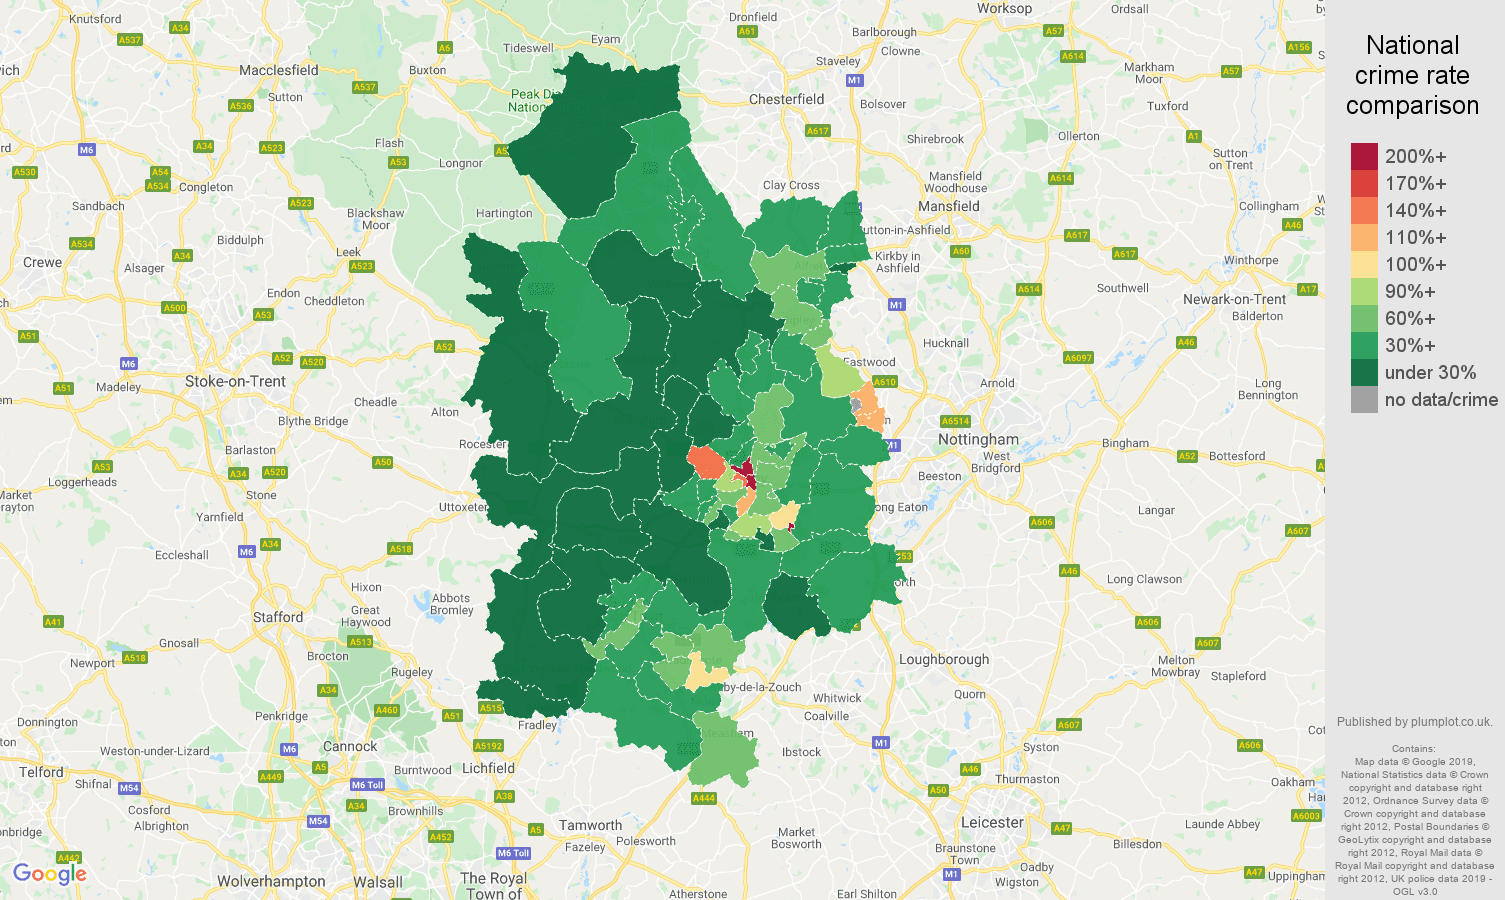 Derby public order crime rate comparison map